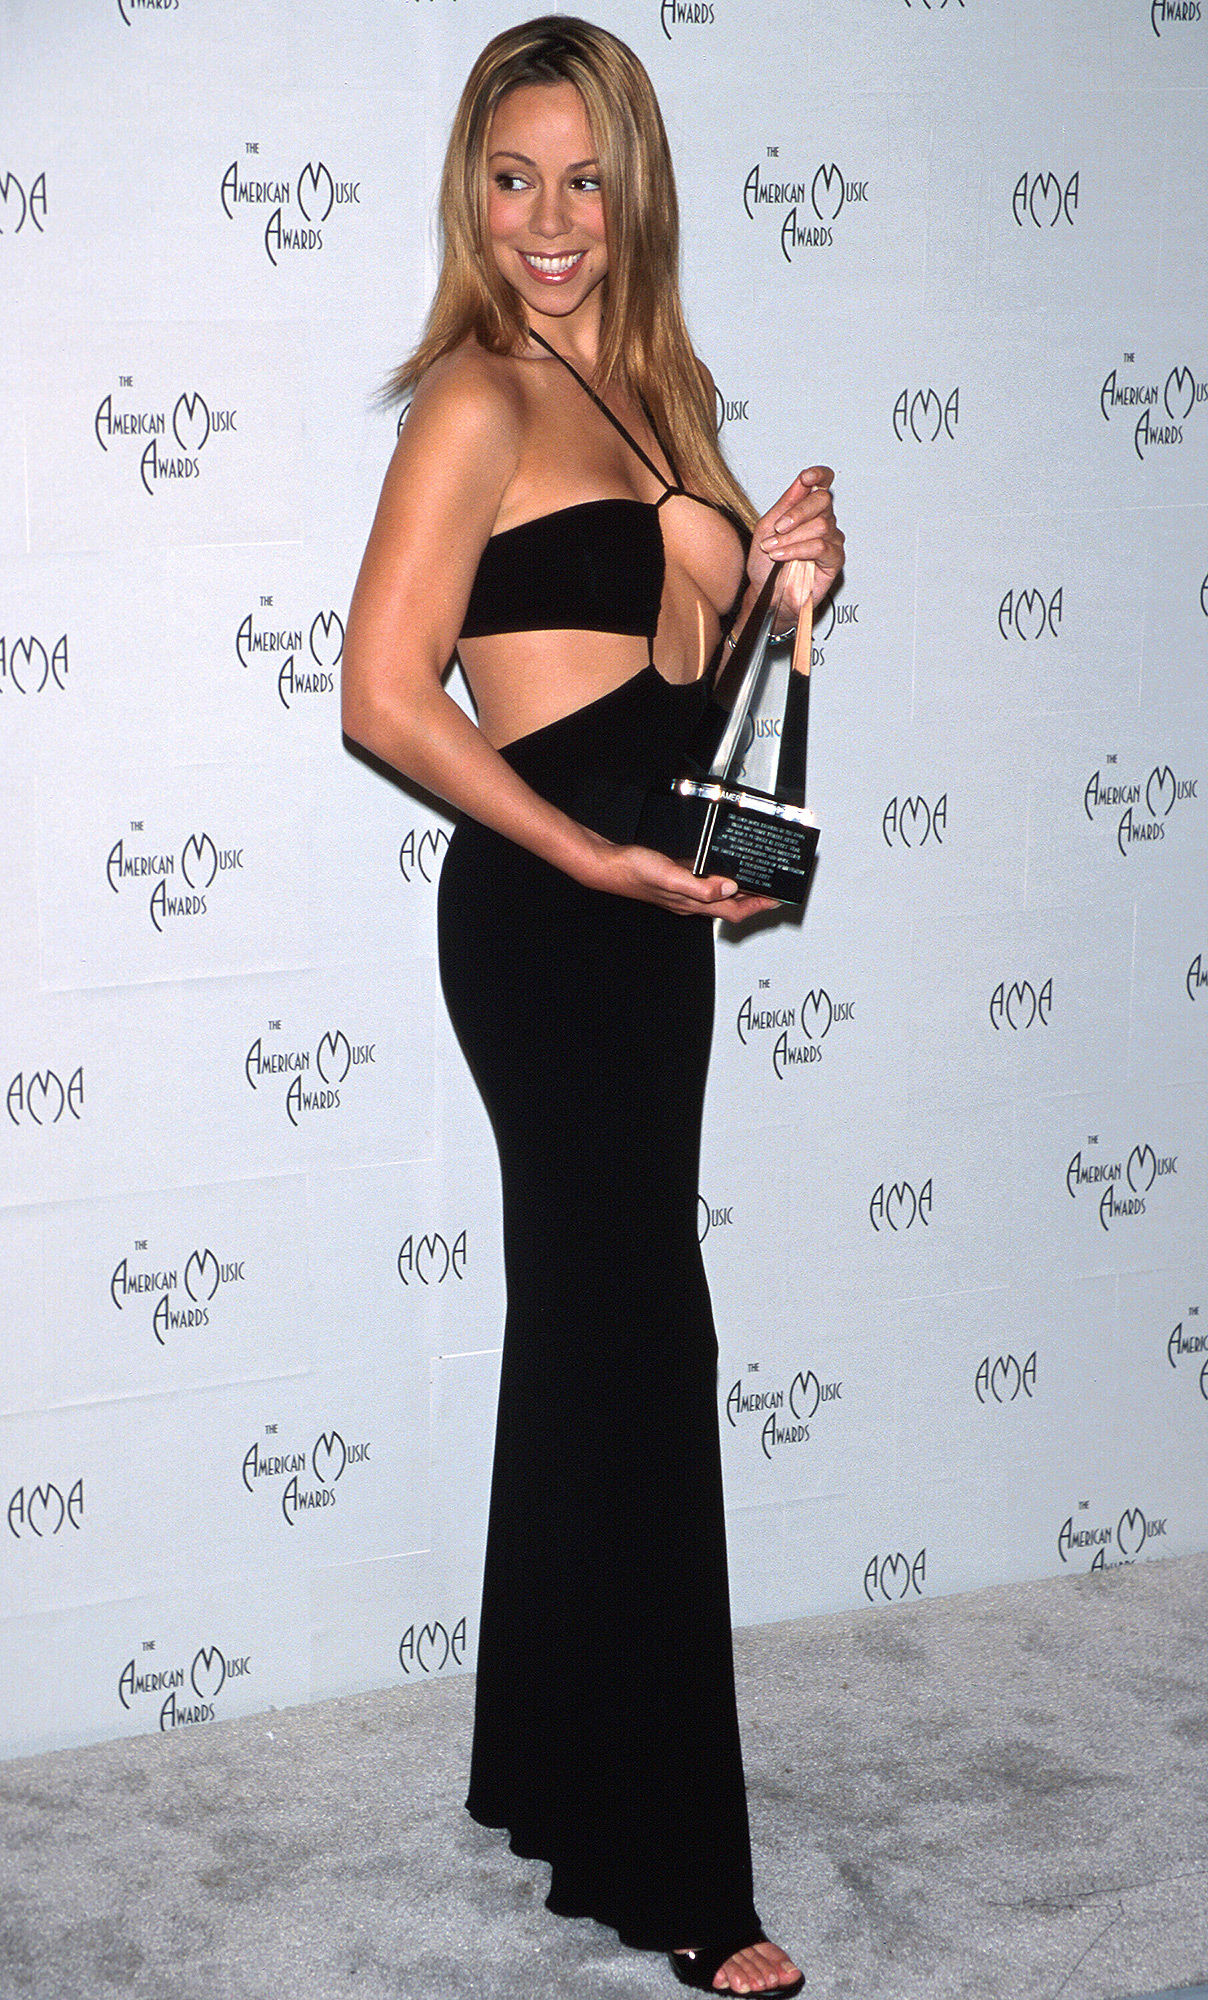 Mariah Carey (wearing black two-piece outfit) holding her award in Press Room at American Music Awards.